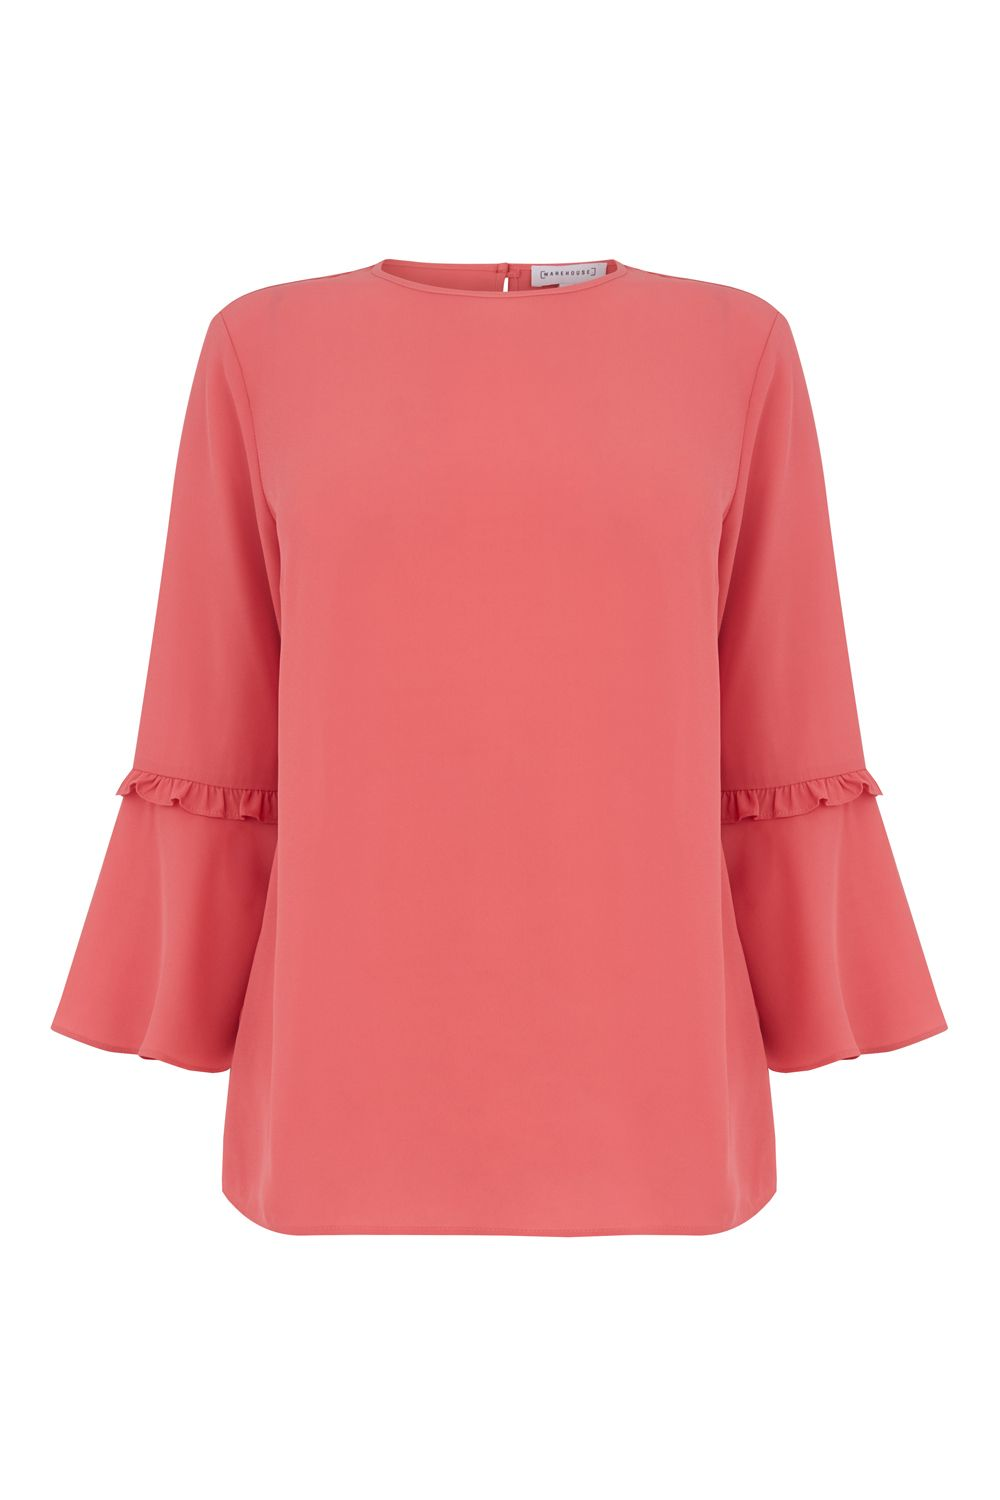 Warehouse Double Frill Top, Dark Pink